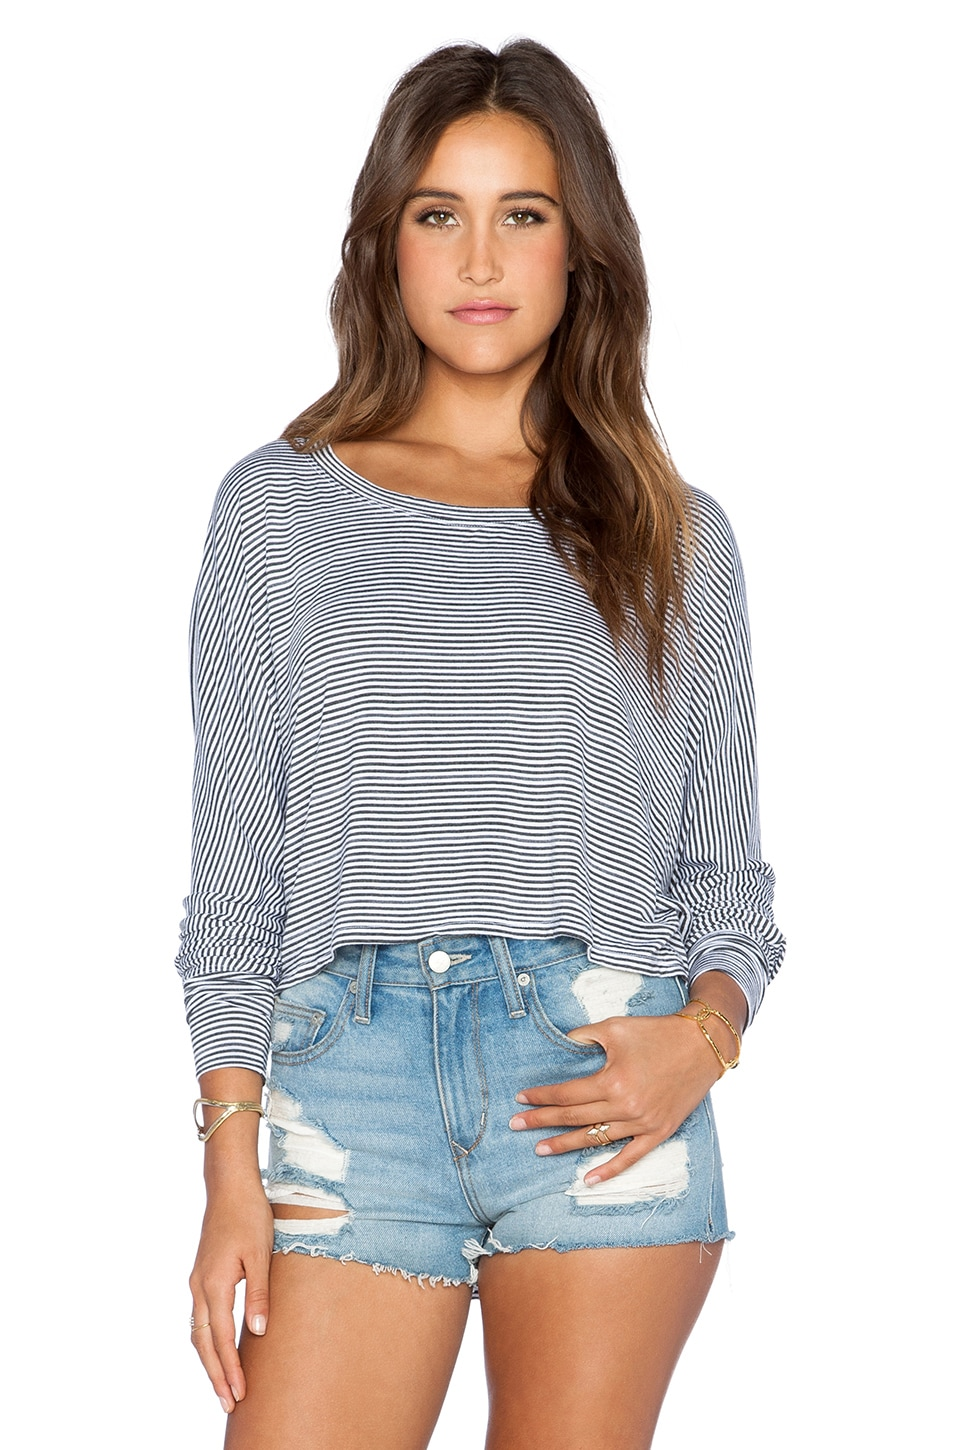 Saint Grace Shirttail Crop Top in White